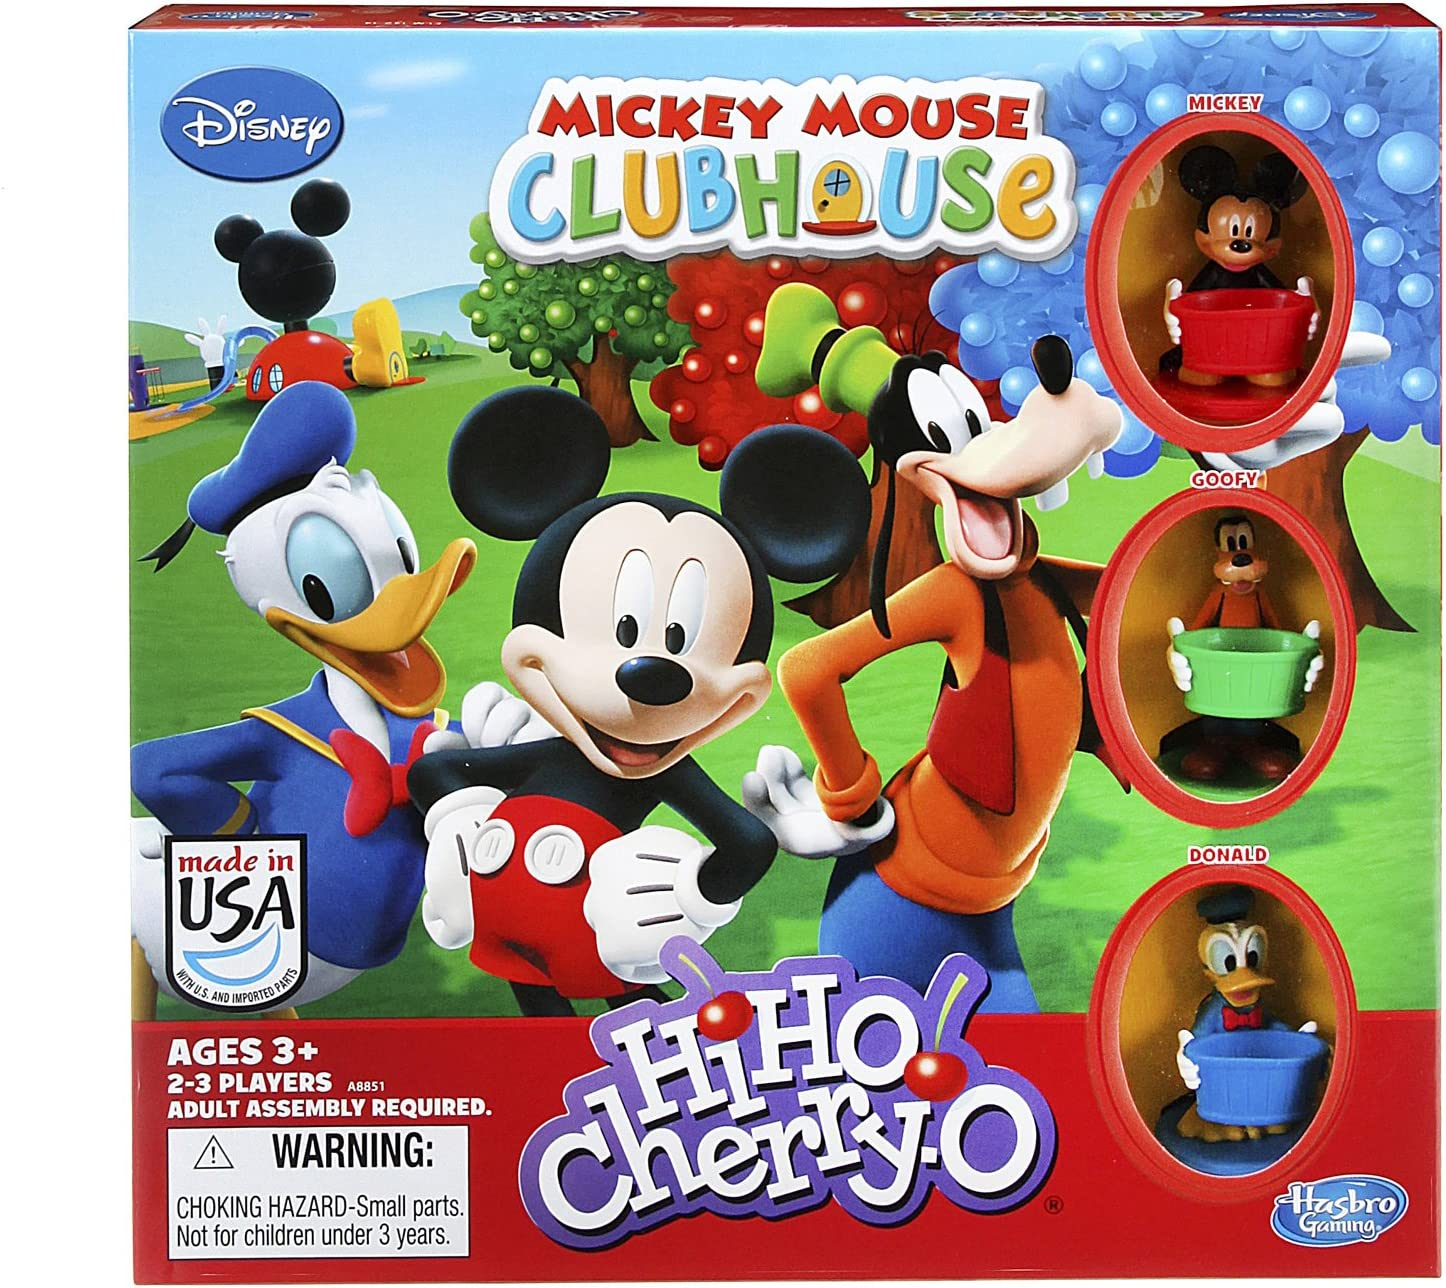 Hasbro HiHo! Cherry-O Game Disney Mickey Mouse Clubhouse Edition